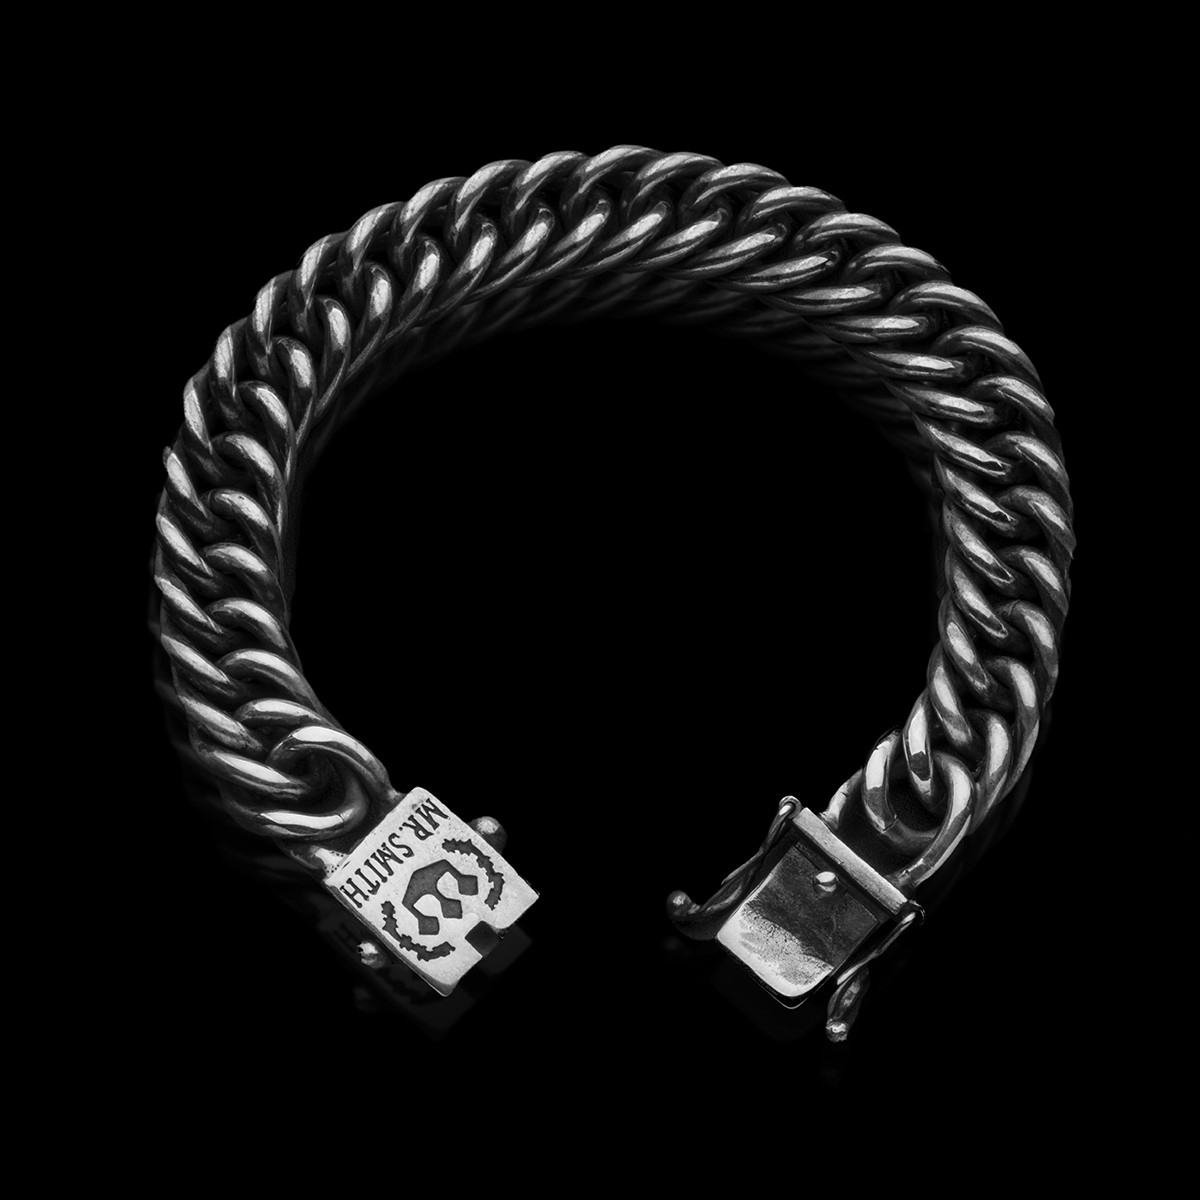 rock-roll-silver-links-bracelet